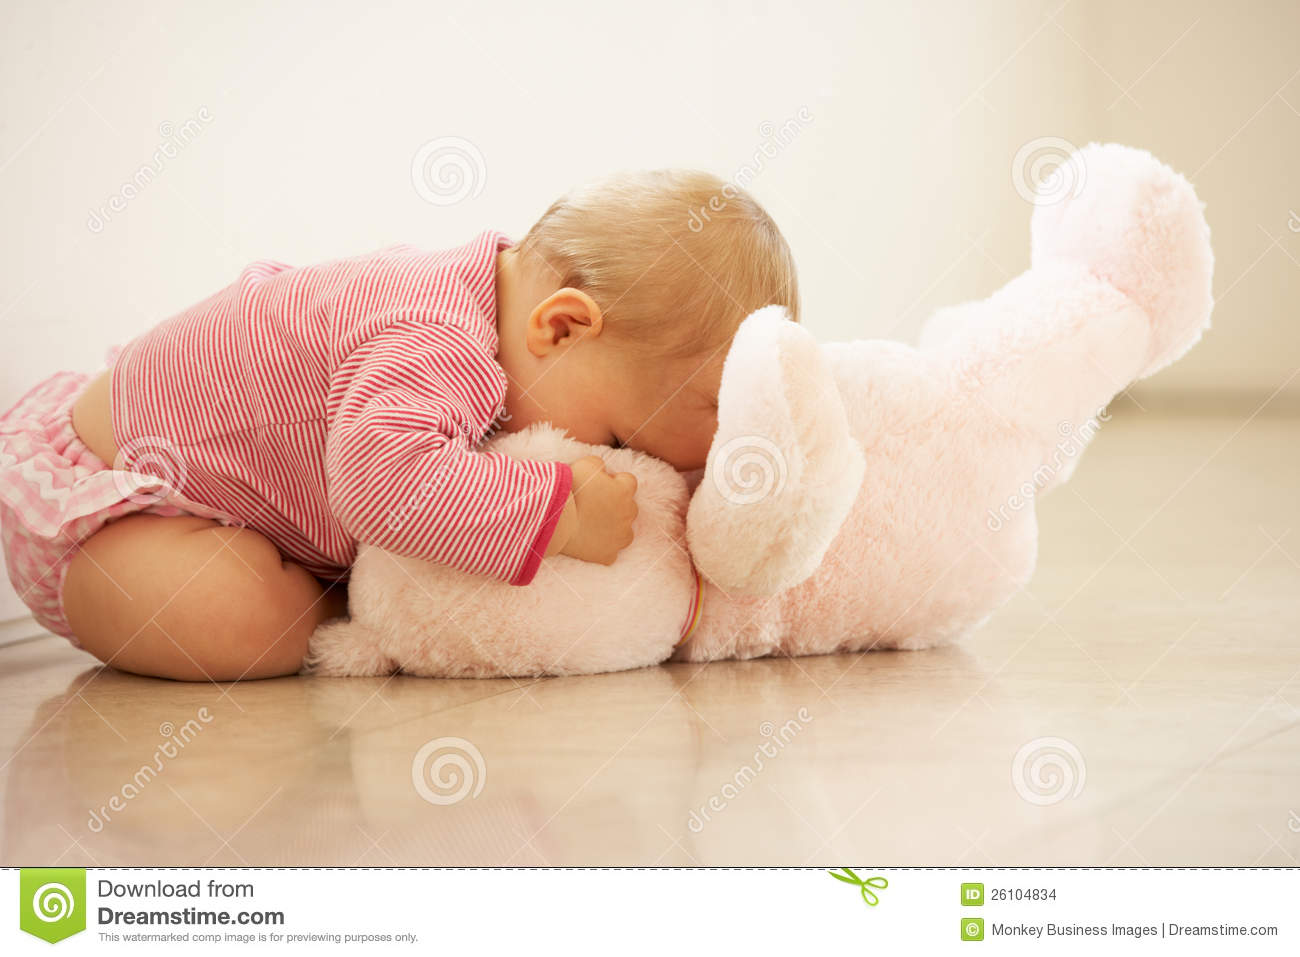 Sweet Home 3d Floor Plans Baby Girl Cuddling Pink Teddy Bear At Home Stock Images